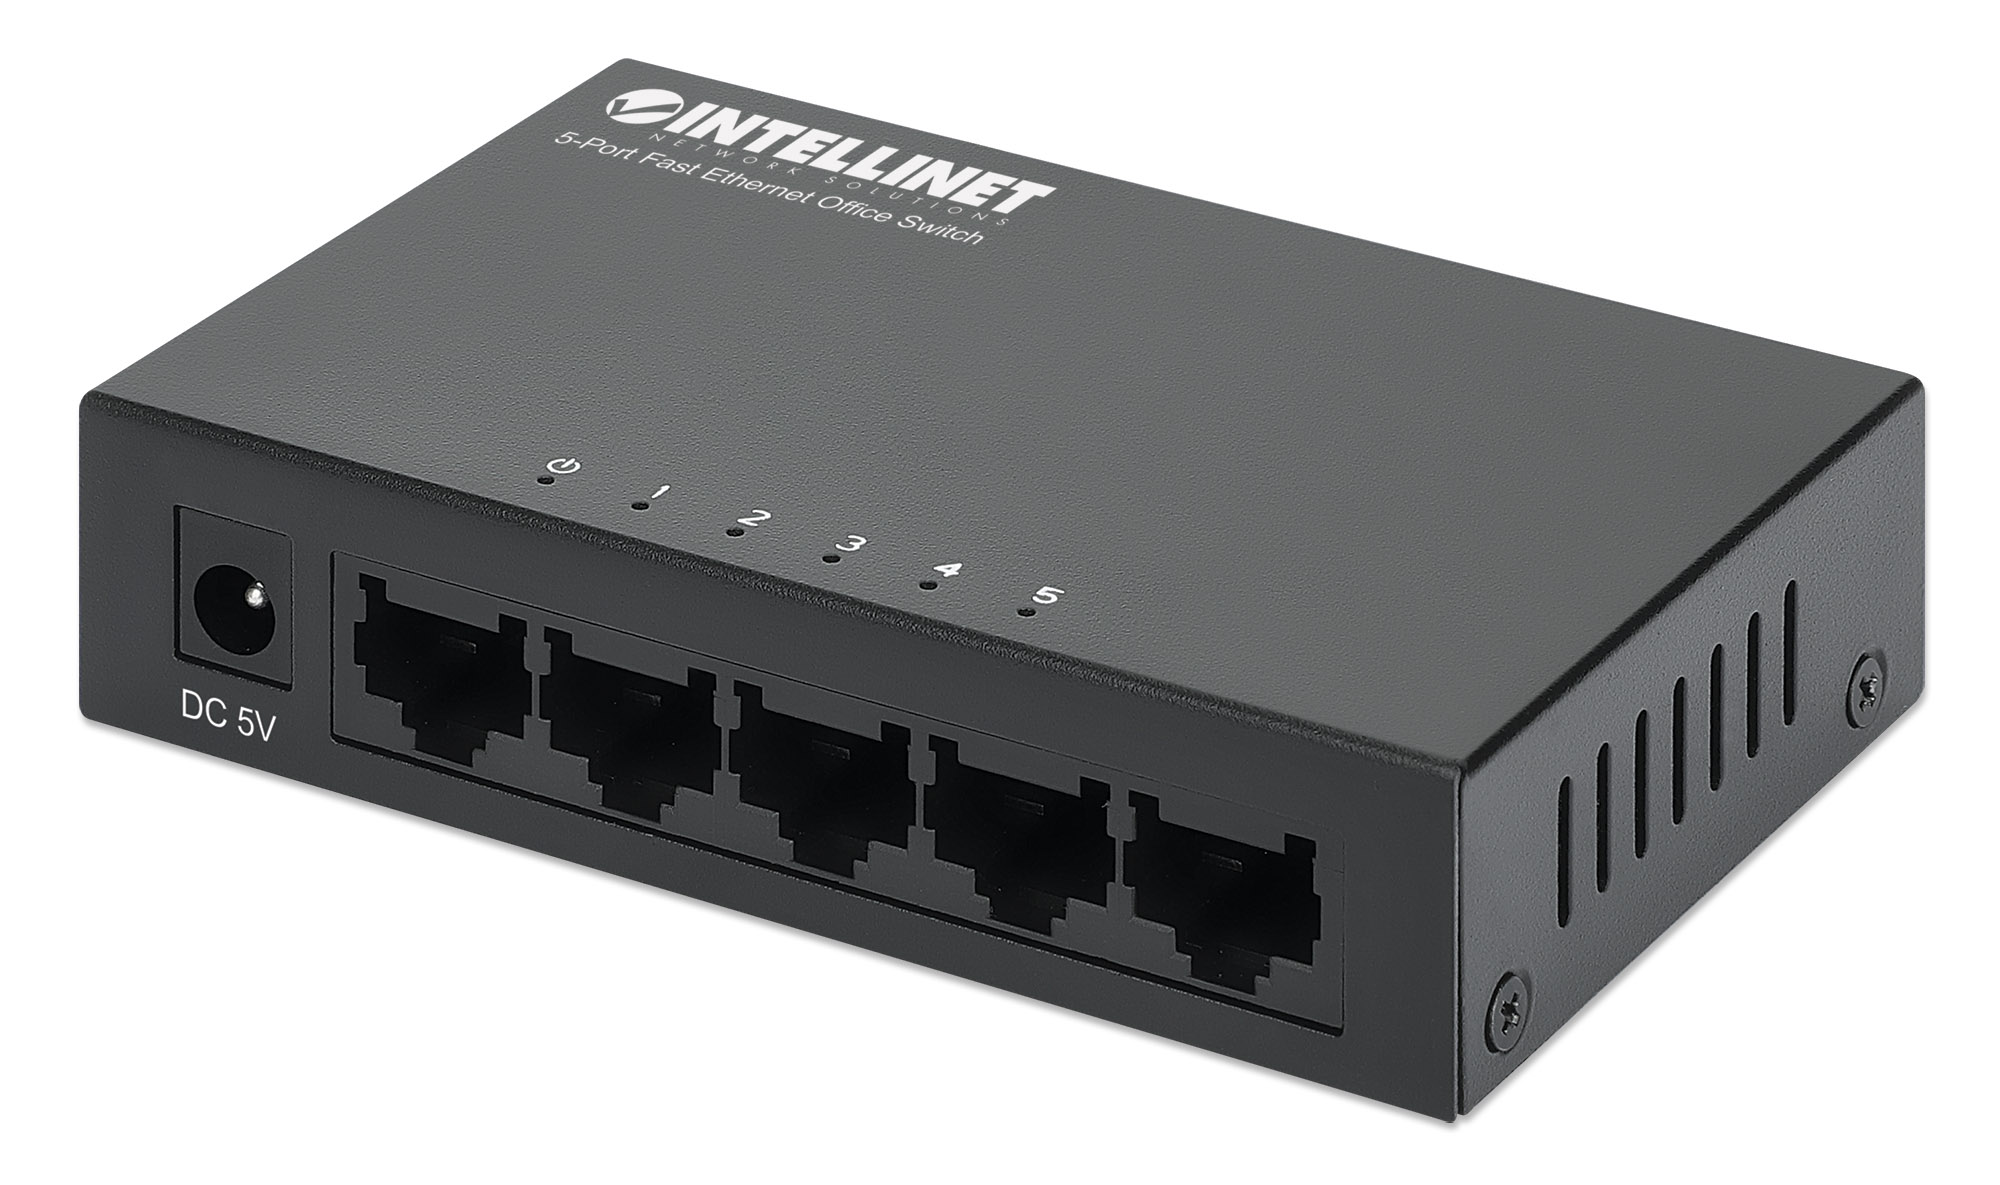 5-Port Fast Ethernet Office Switch